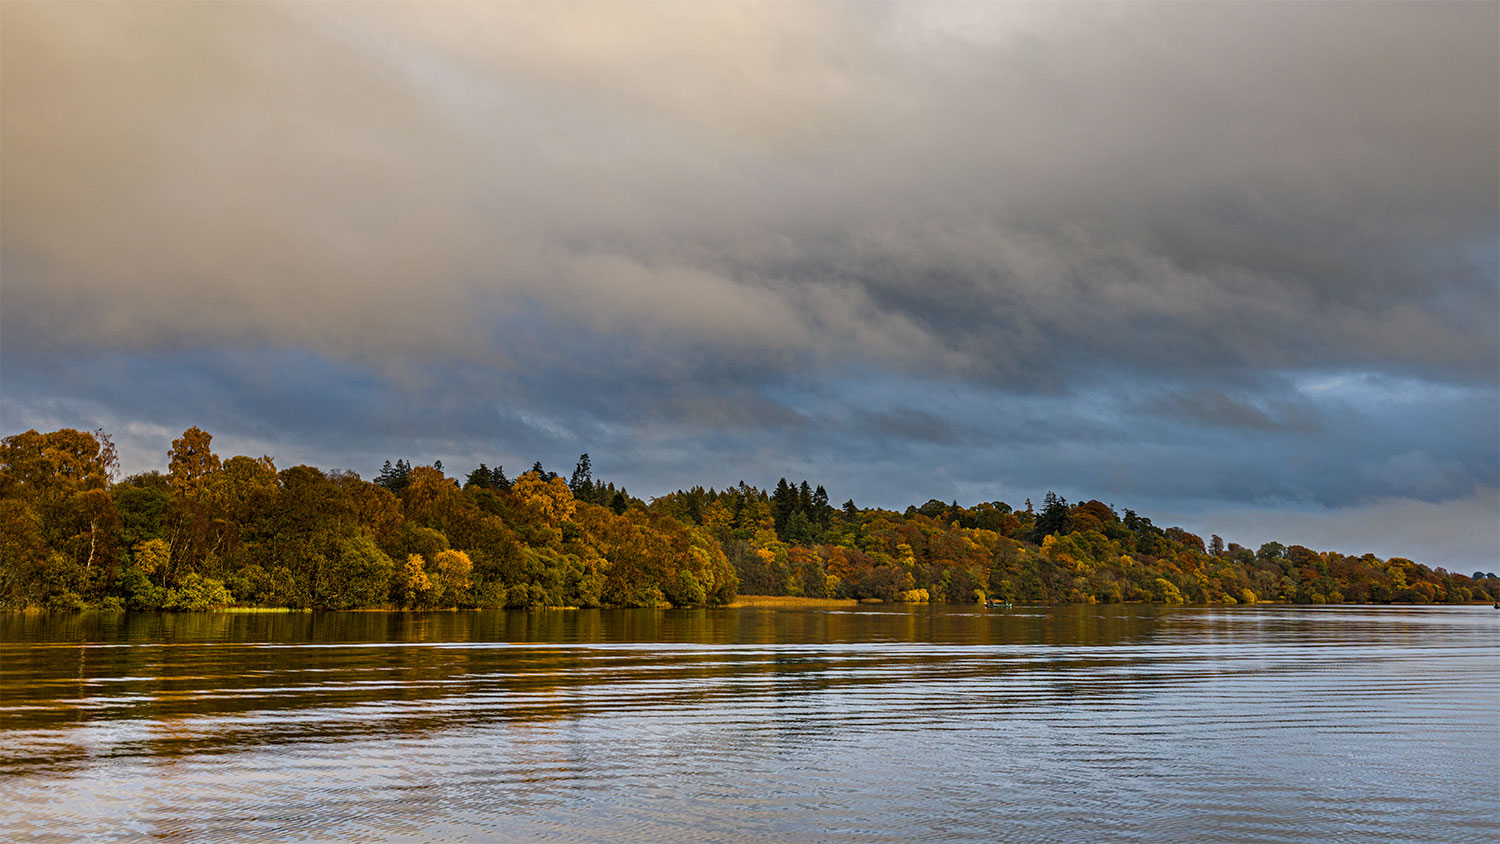 Menteith21Oct20_4991-HDR.jpg